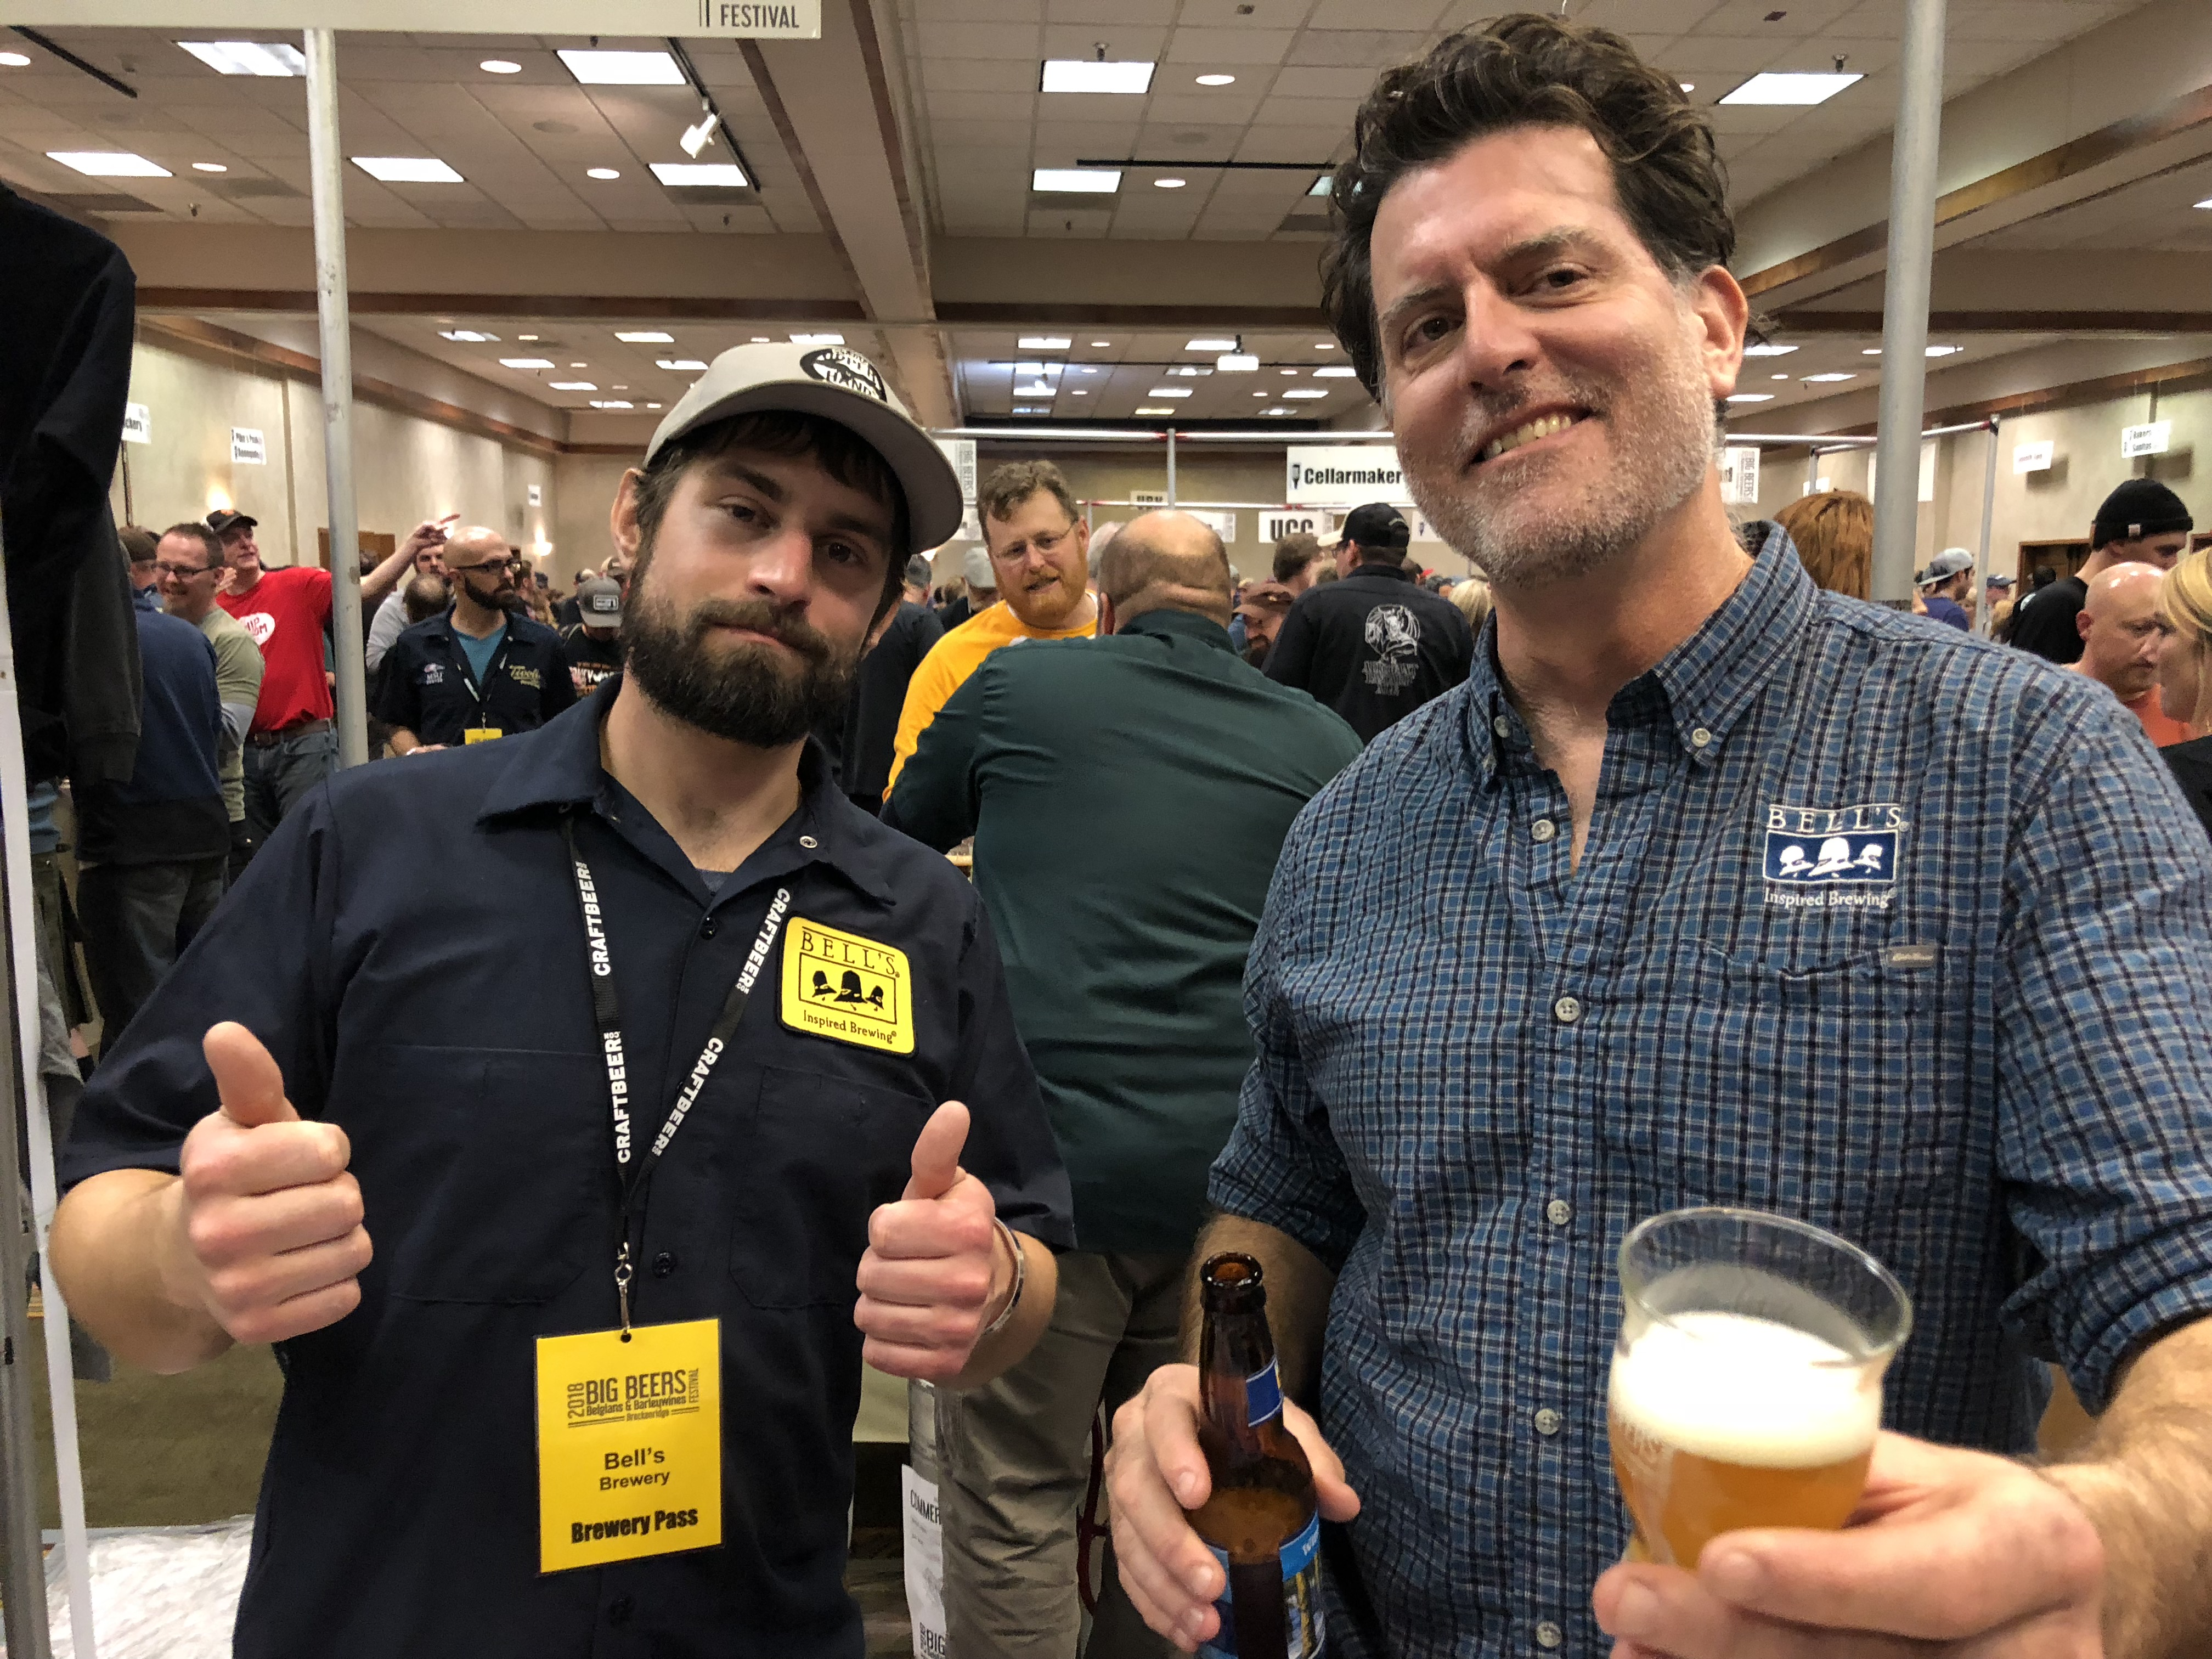 John Mallett (right) from Bell's Brewery at the Big Beers, Belgians & Barleywines Festival.